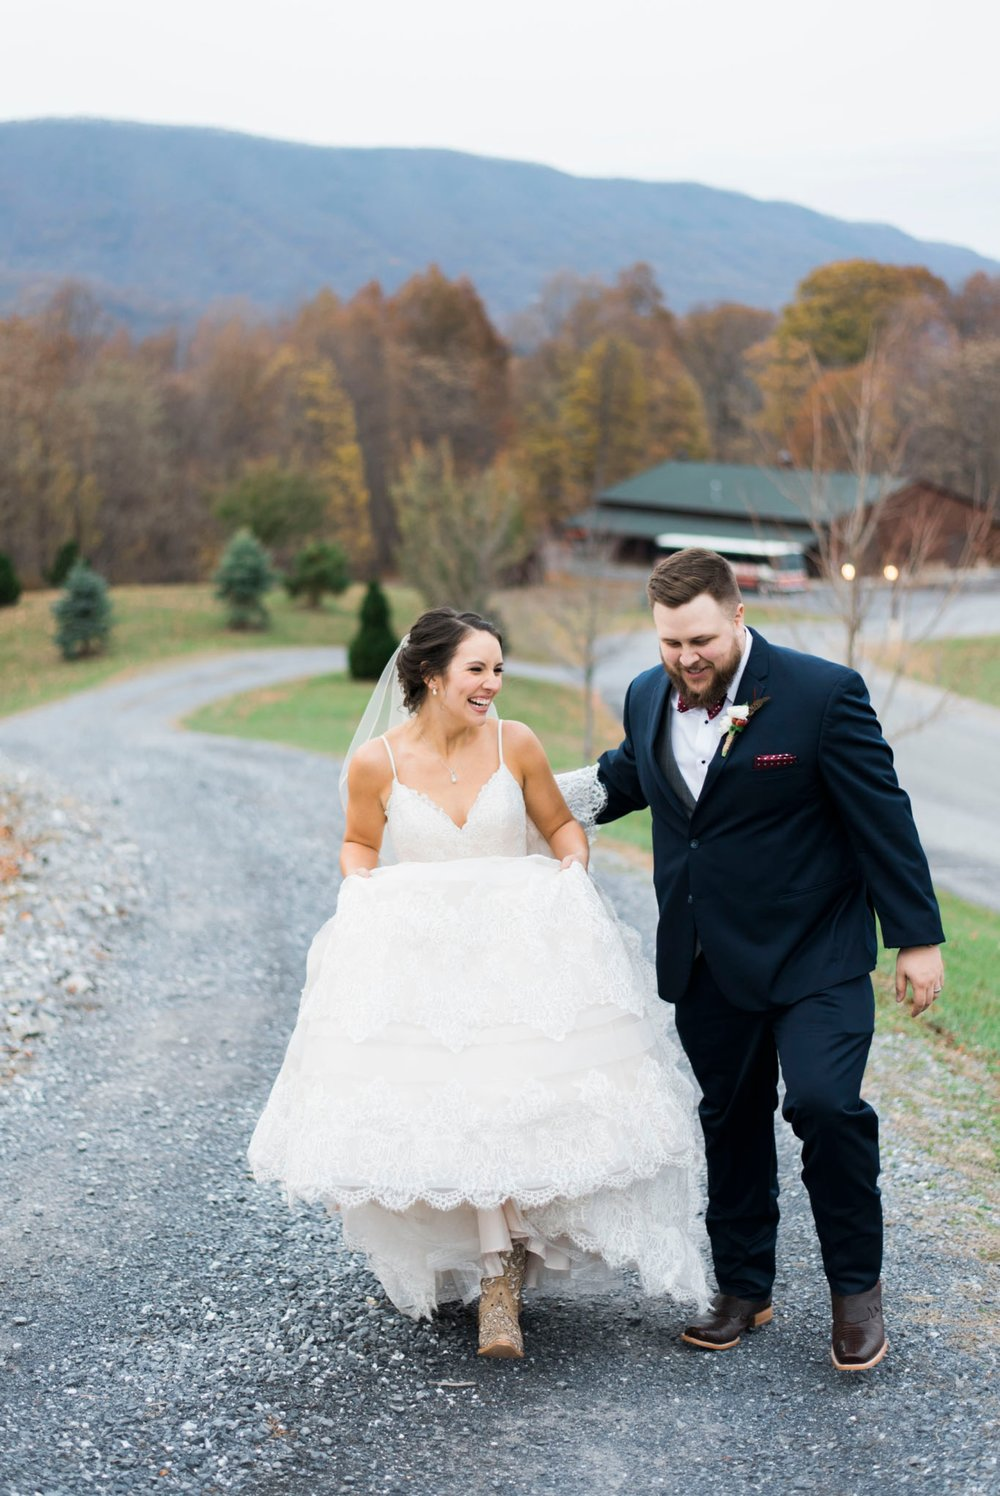 IrvineEstate_LexingtonVA_Wedding_FallWedding_VirginiaWeddingPhotographer 92.jpg